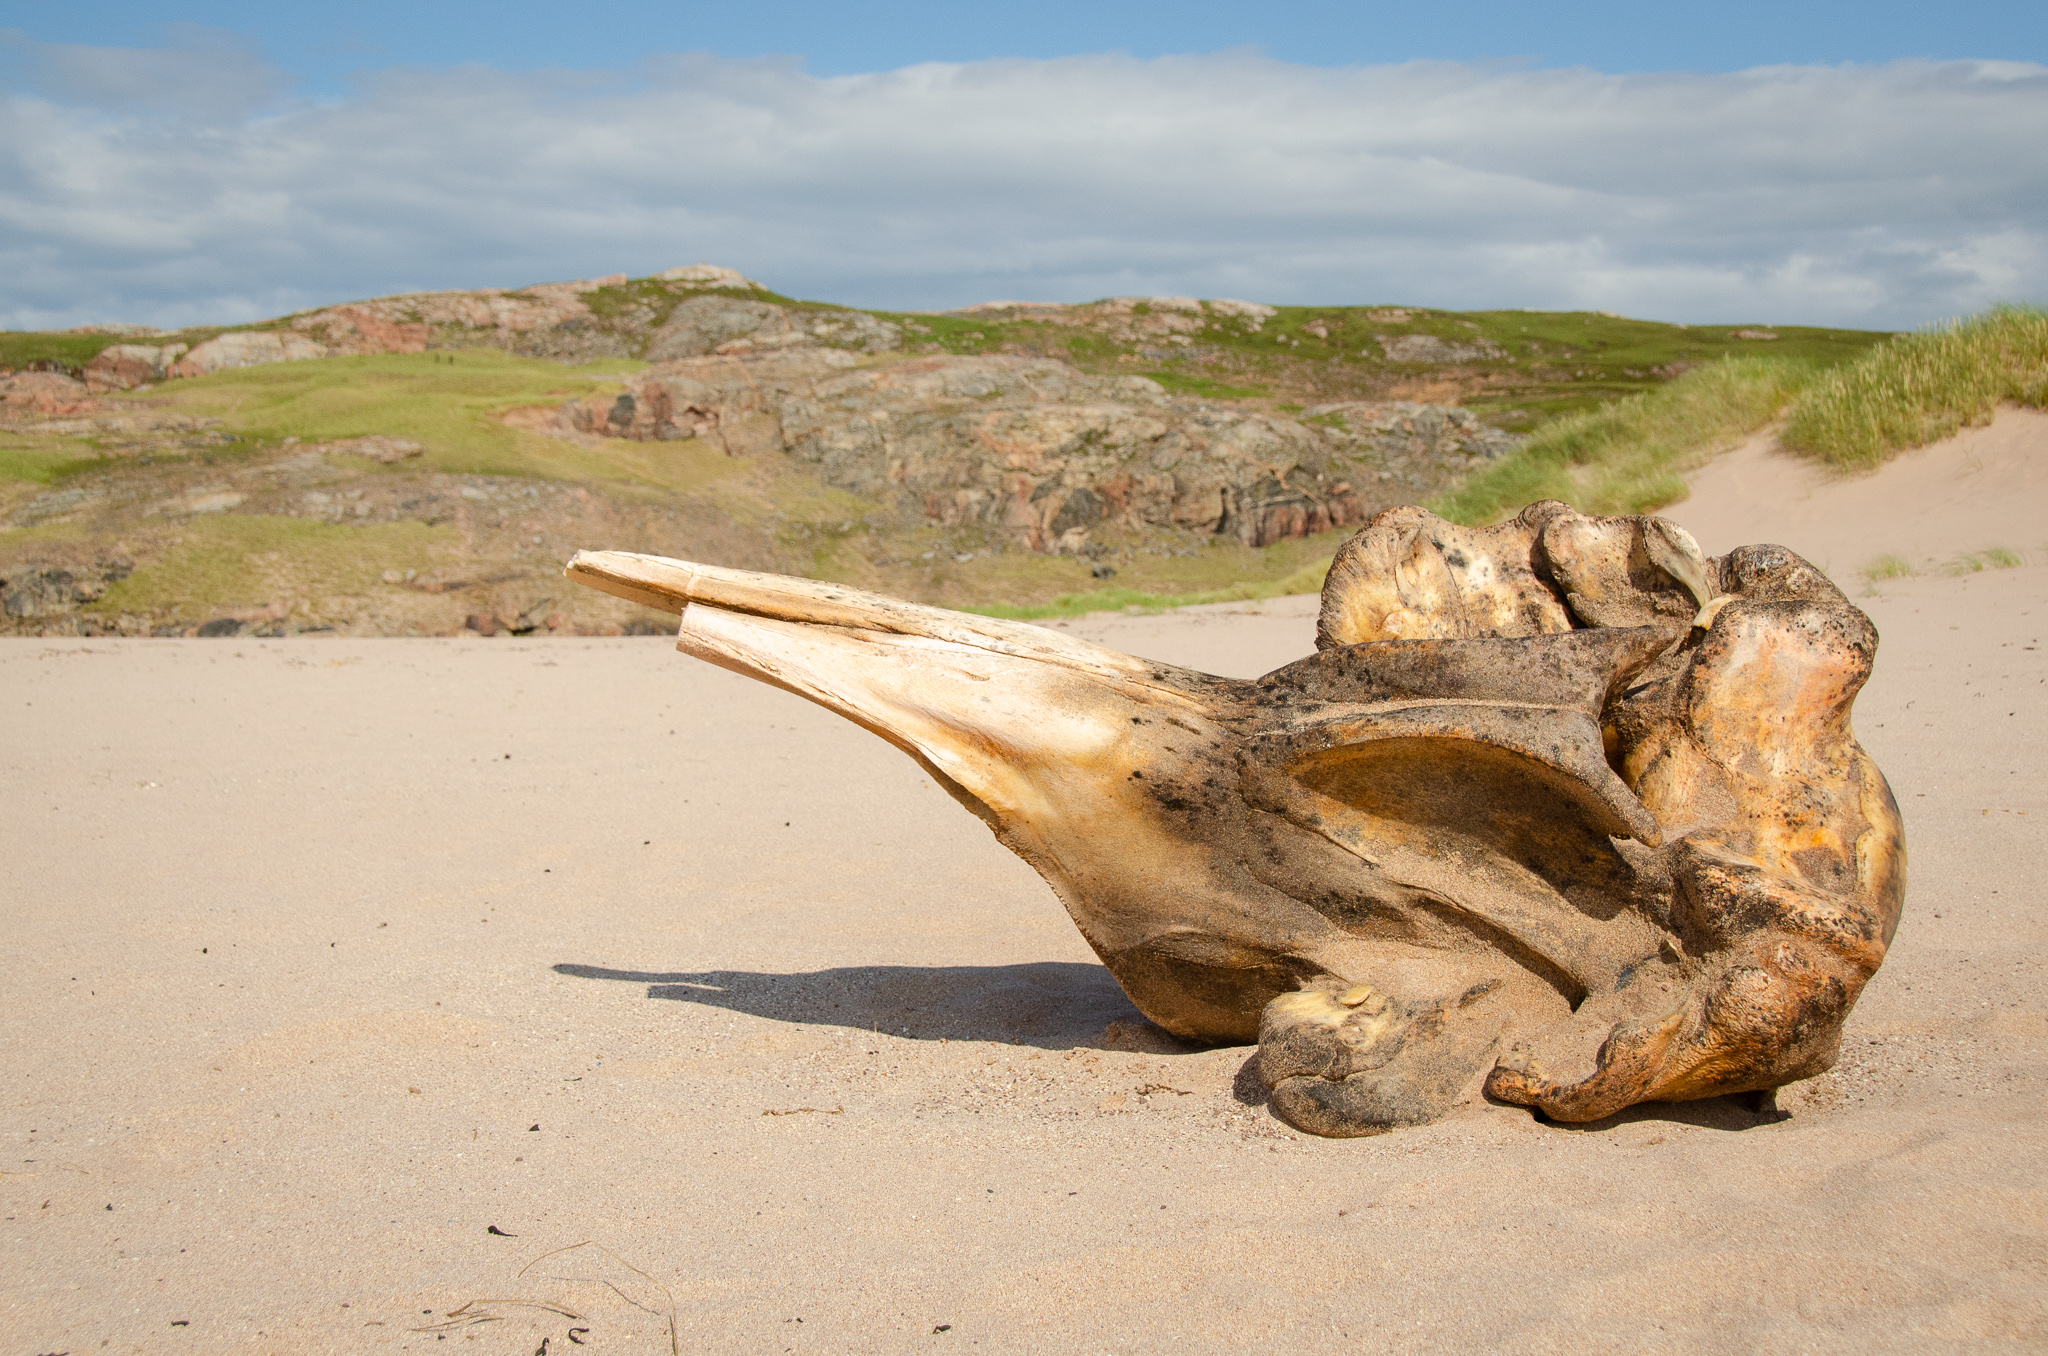 It's not every day you find a whale's skull washed up on the beach…